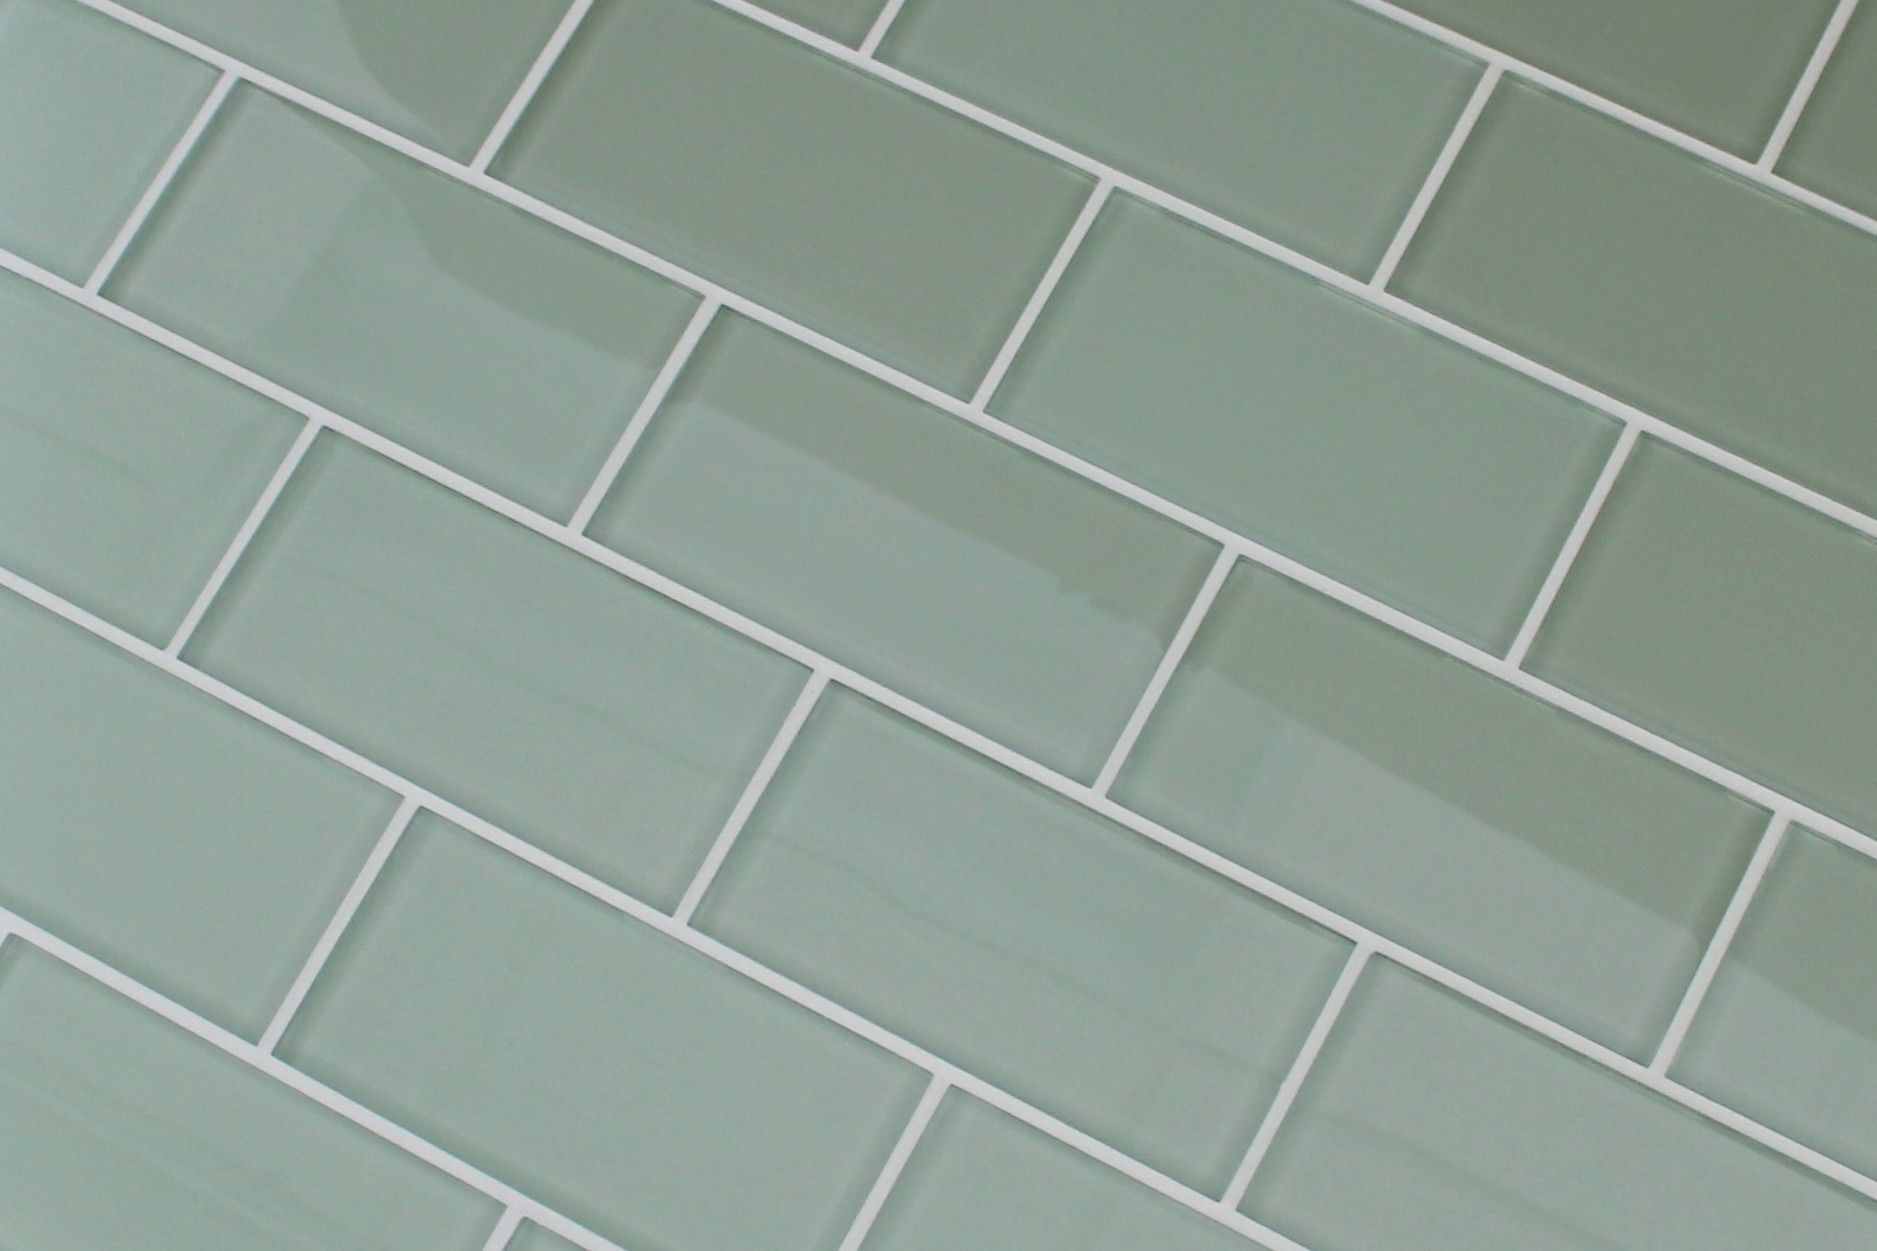 excellent dimensions of subway tile. A light sage green glass subway tile  very mellow that will look great in your kitchen Sage Green x Glass Subway Tiles 3x6